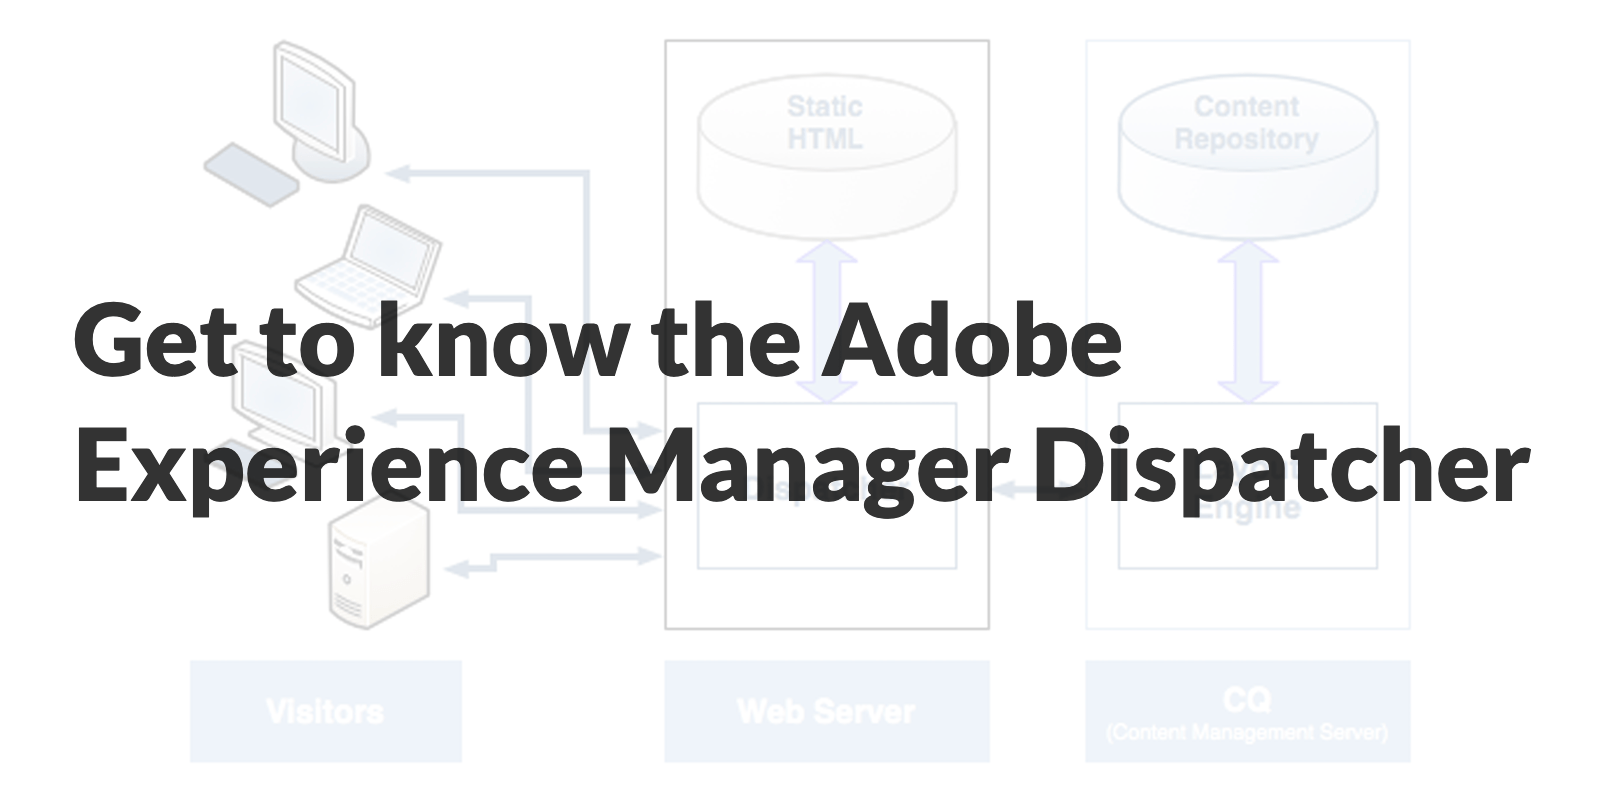 Get to know the Adobe Experience Manager Dispatcher